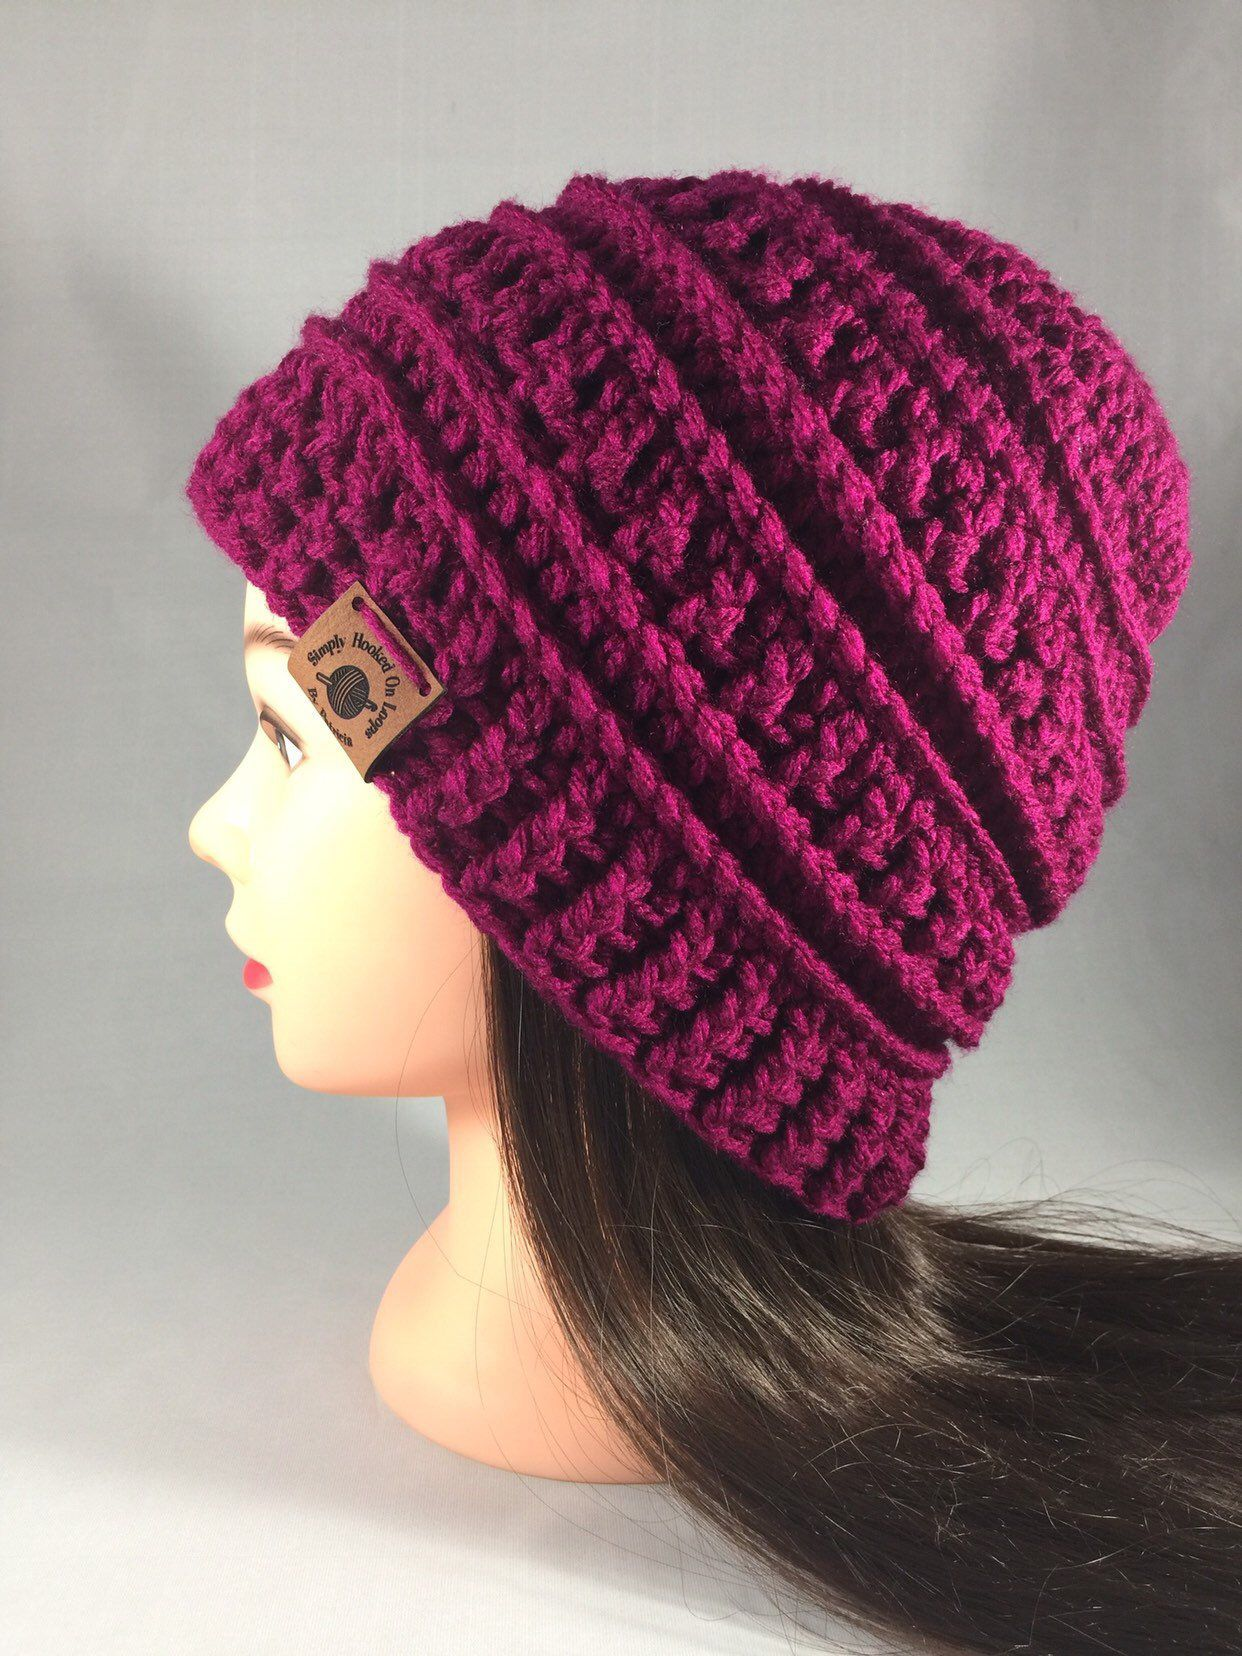 Excited to share this item from my  etsy shop  Raspberry Women s Textured  Hat Beanie Cap Handmade  accessories  hat  beanie  cap  textured  large   pink ... 4b098a994c1